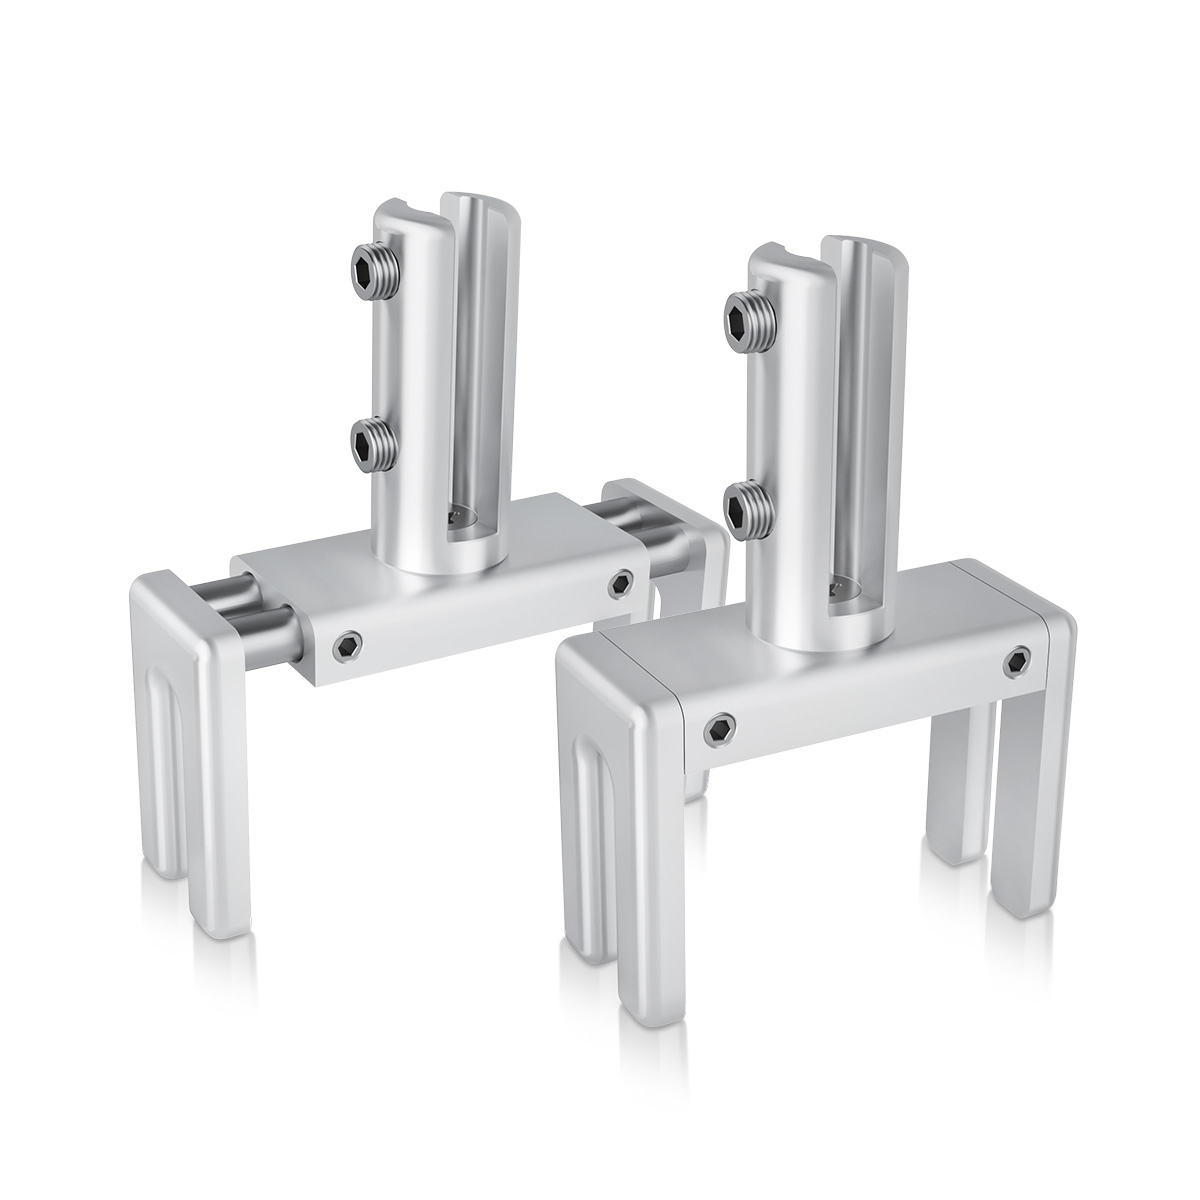 Set of 2, Adjustable Clamp, Aluminum Clear Anodized Finish, to Accommodate 1-3/4'' to 2-3/8'' Cubicle partition. Upt to 1/4'' material accepted on the fork